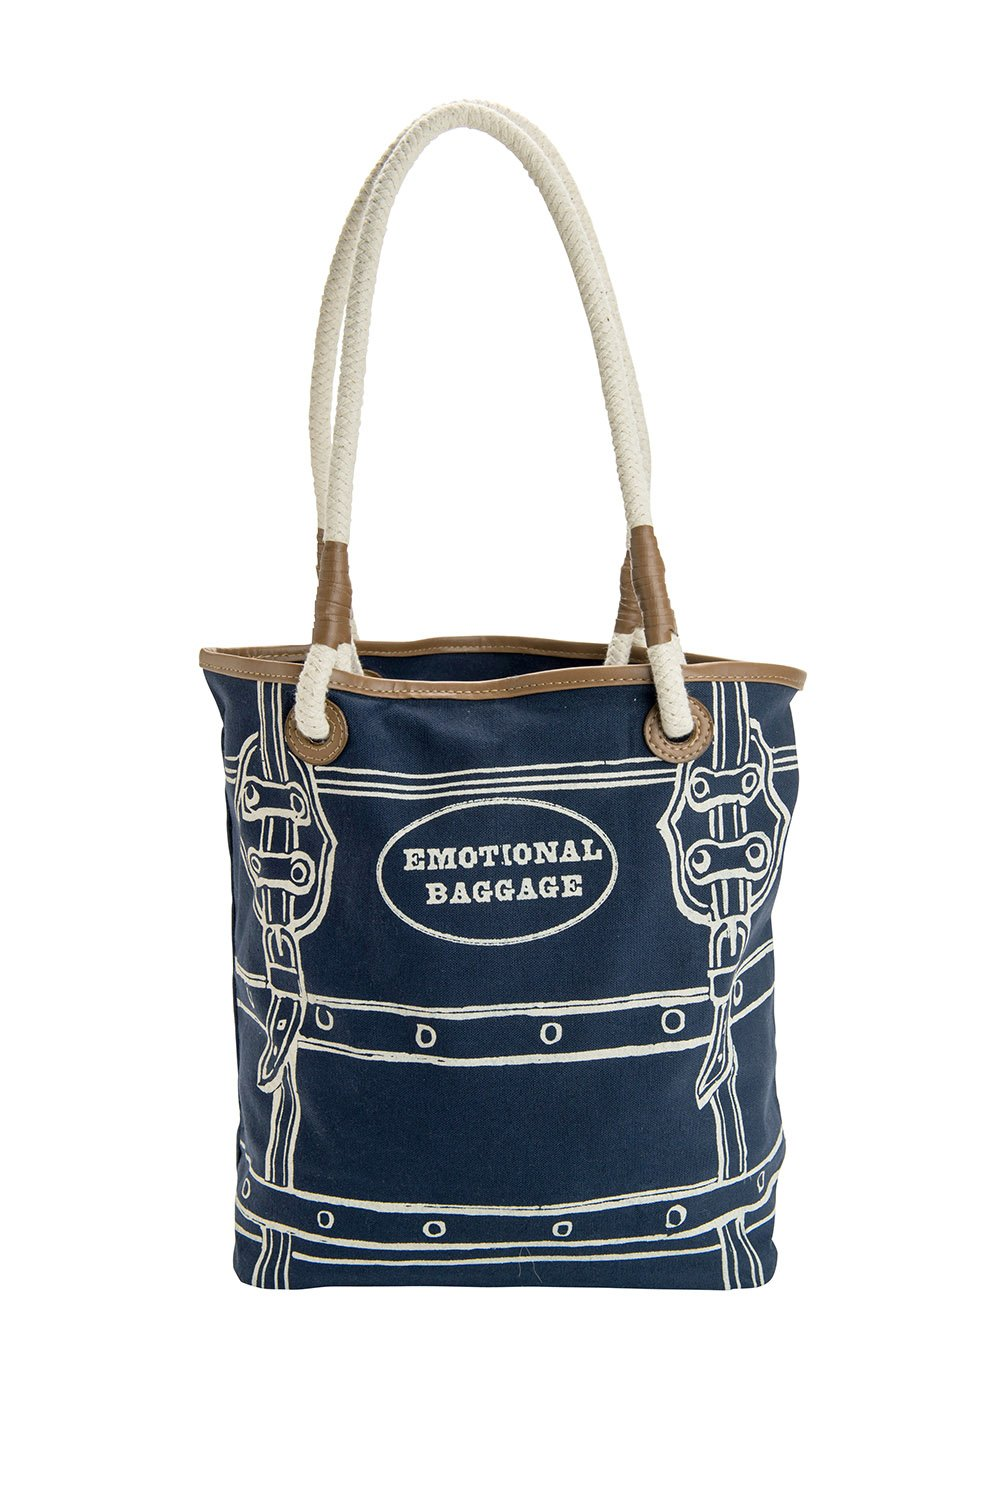 JKC Studios Blue Cotton Canvas Emotional Baggage Tote Bag with Rope Handles, 14.5 by 12-Inch